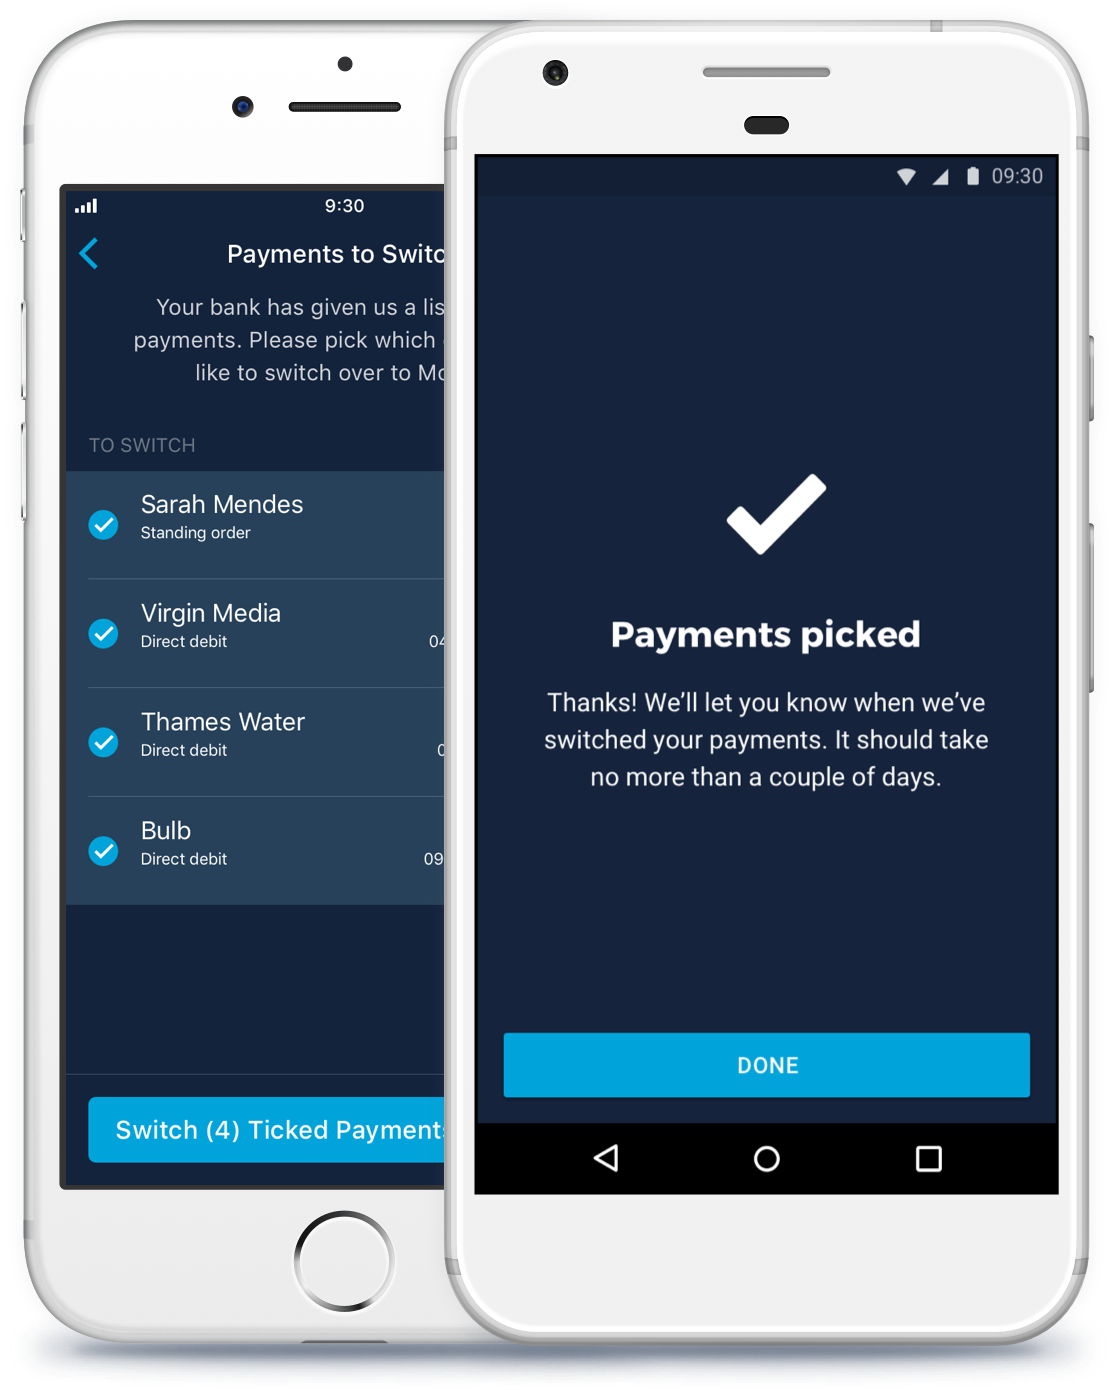 Picking payments within the Monzo app for iOS and Android